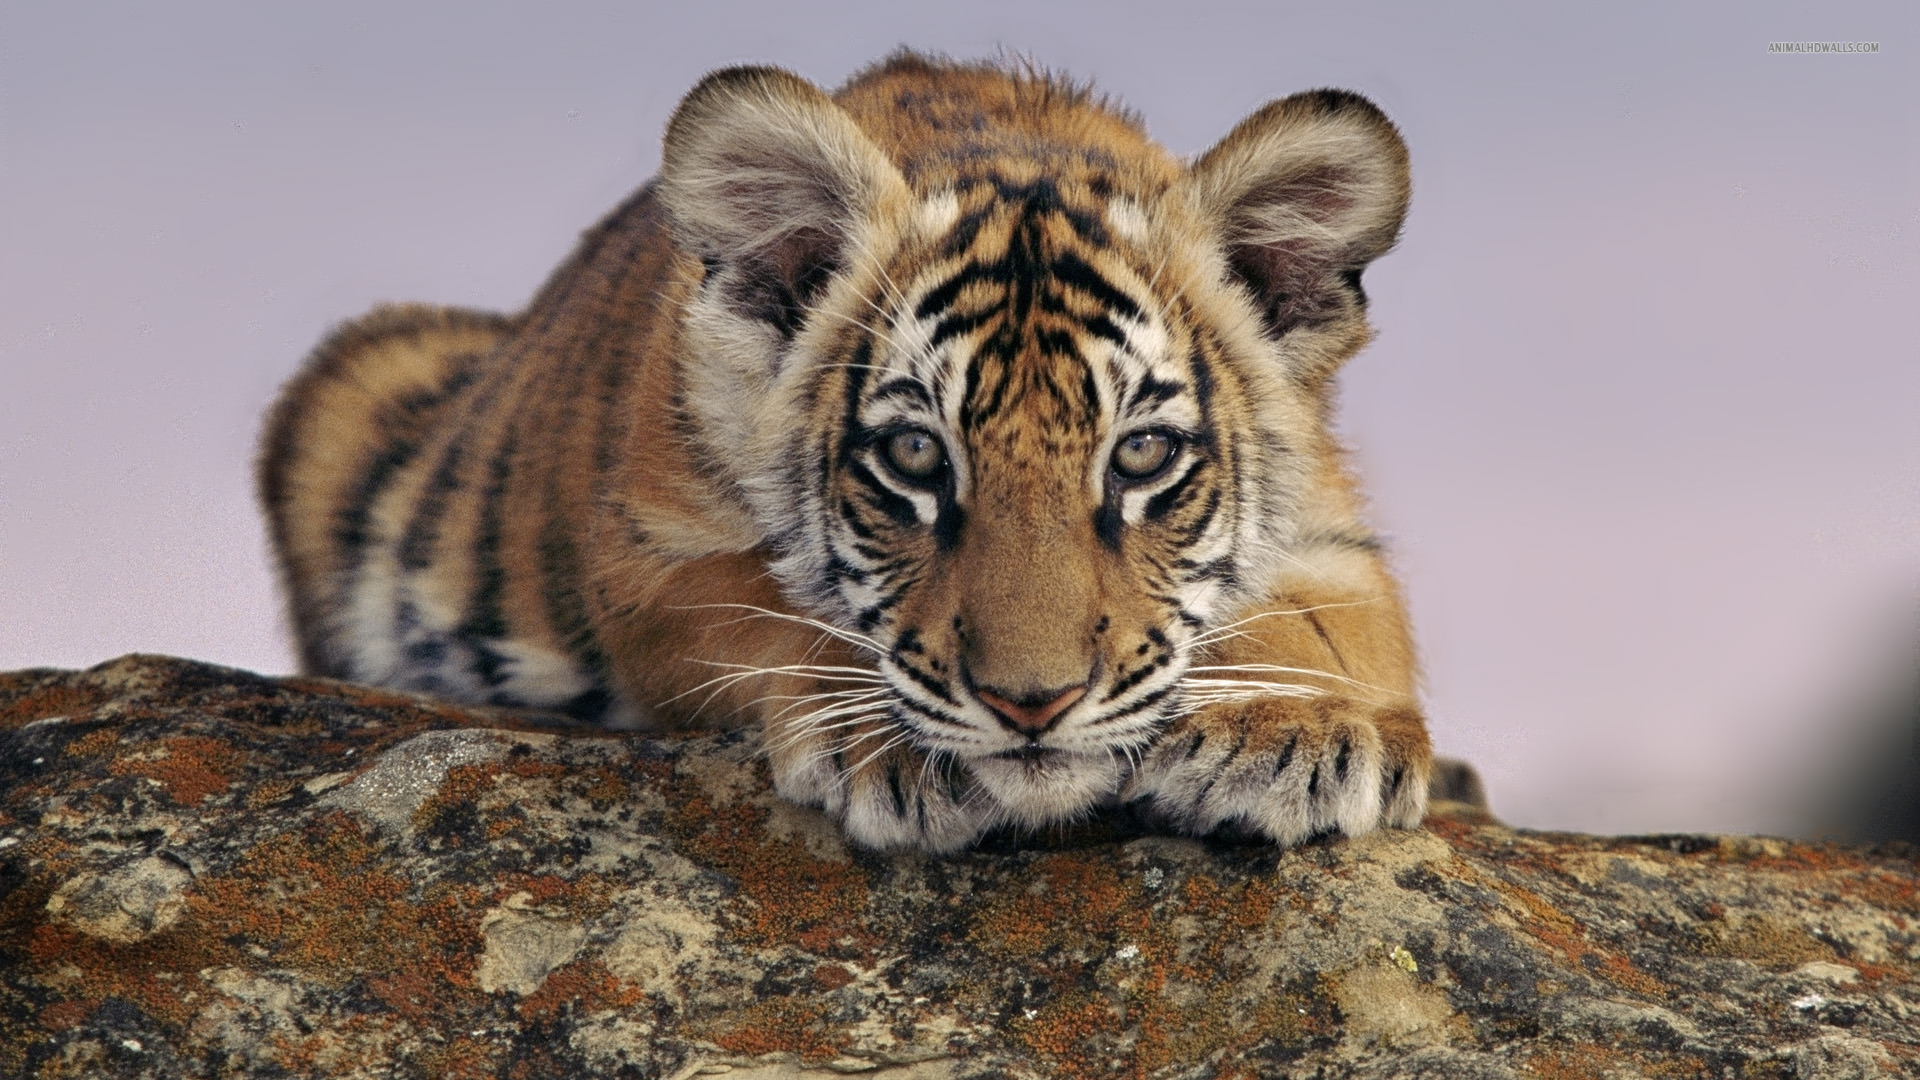 Tiger cub wallpaper 1920x1080